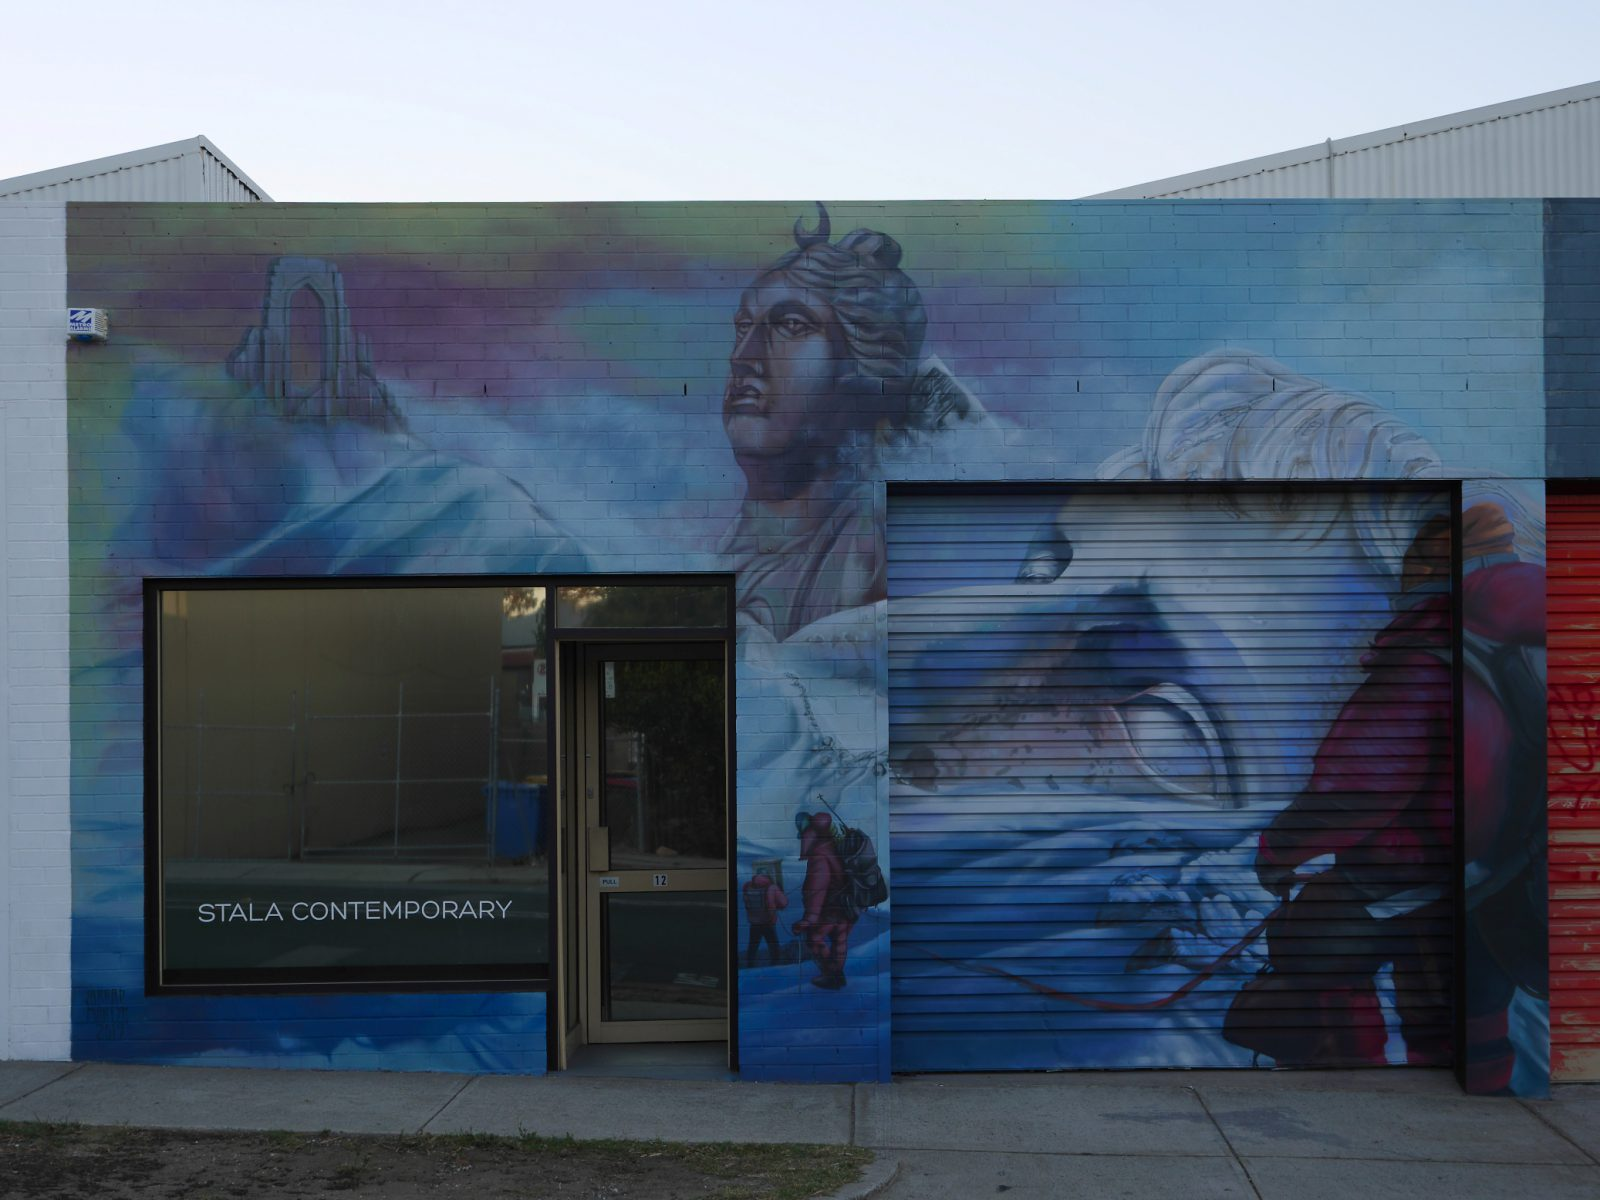 STALA CONTEMPORARY Facade with Jarrad Martyn Mural 2 - Copy